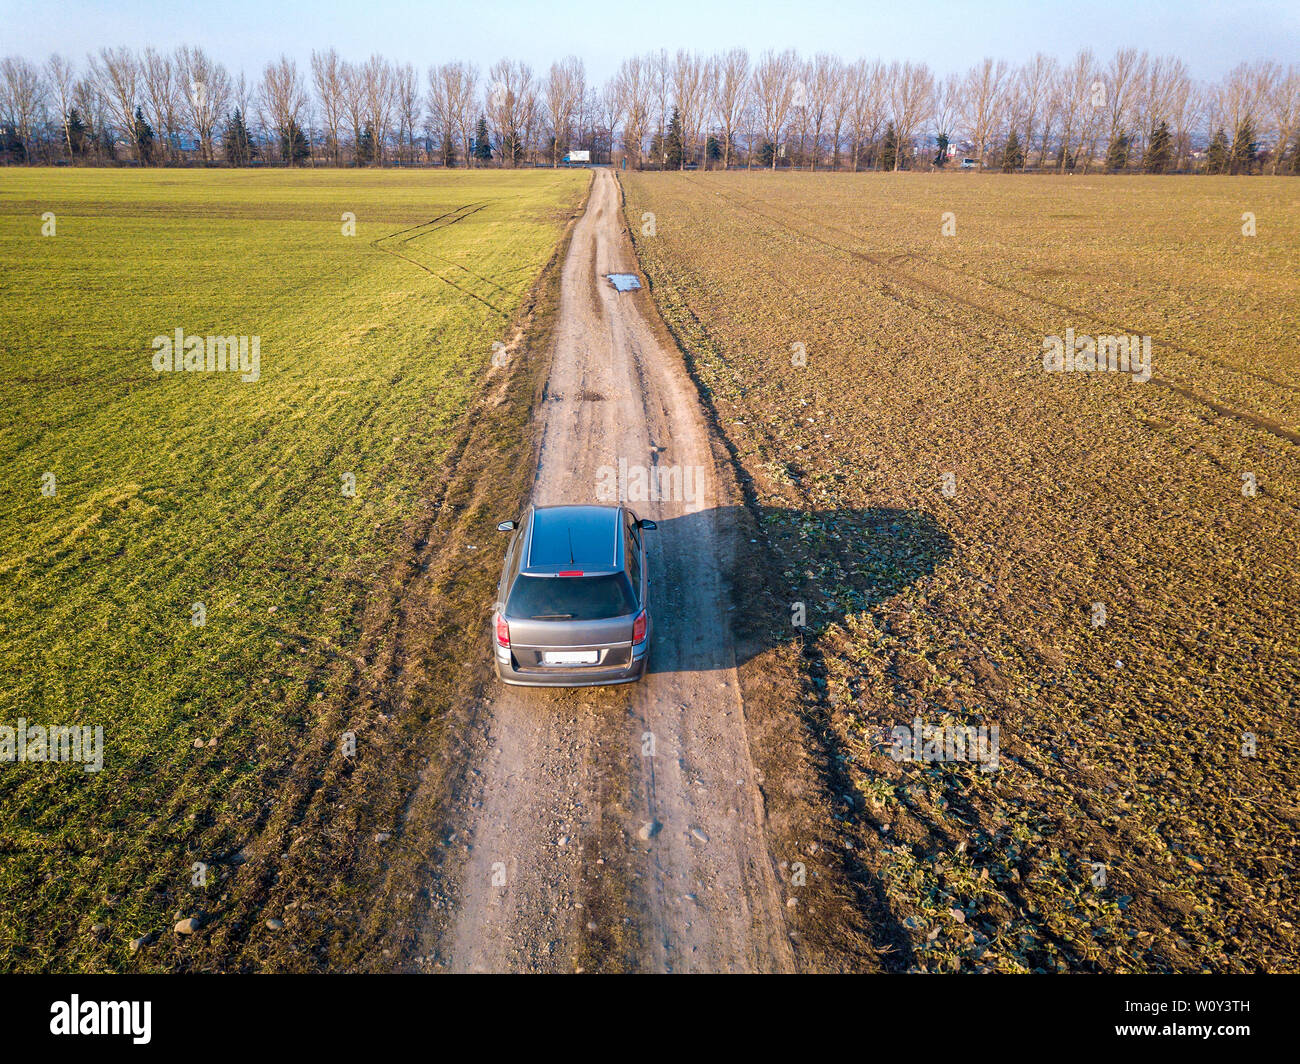 Aerial View Of Car Driving By Straight Ground Road Through Green Fields On Sunny Blue Sky Copy Space Background Drone Photography Stock Photo Alamy